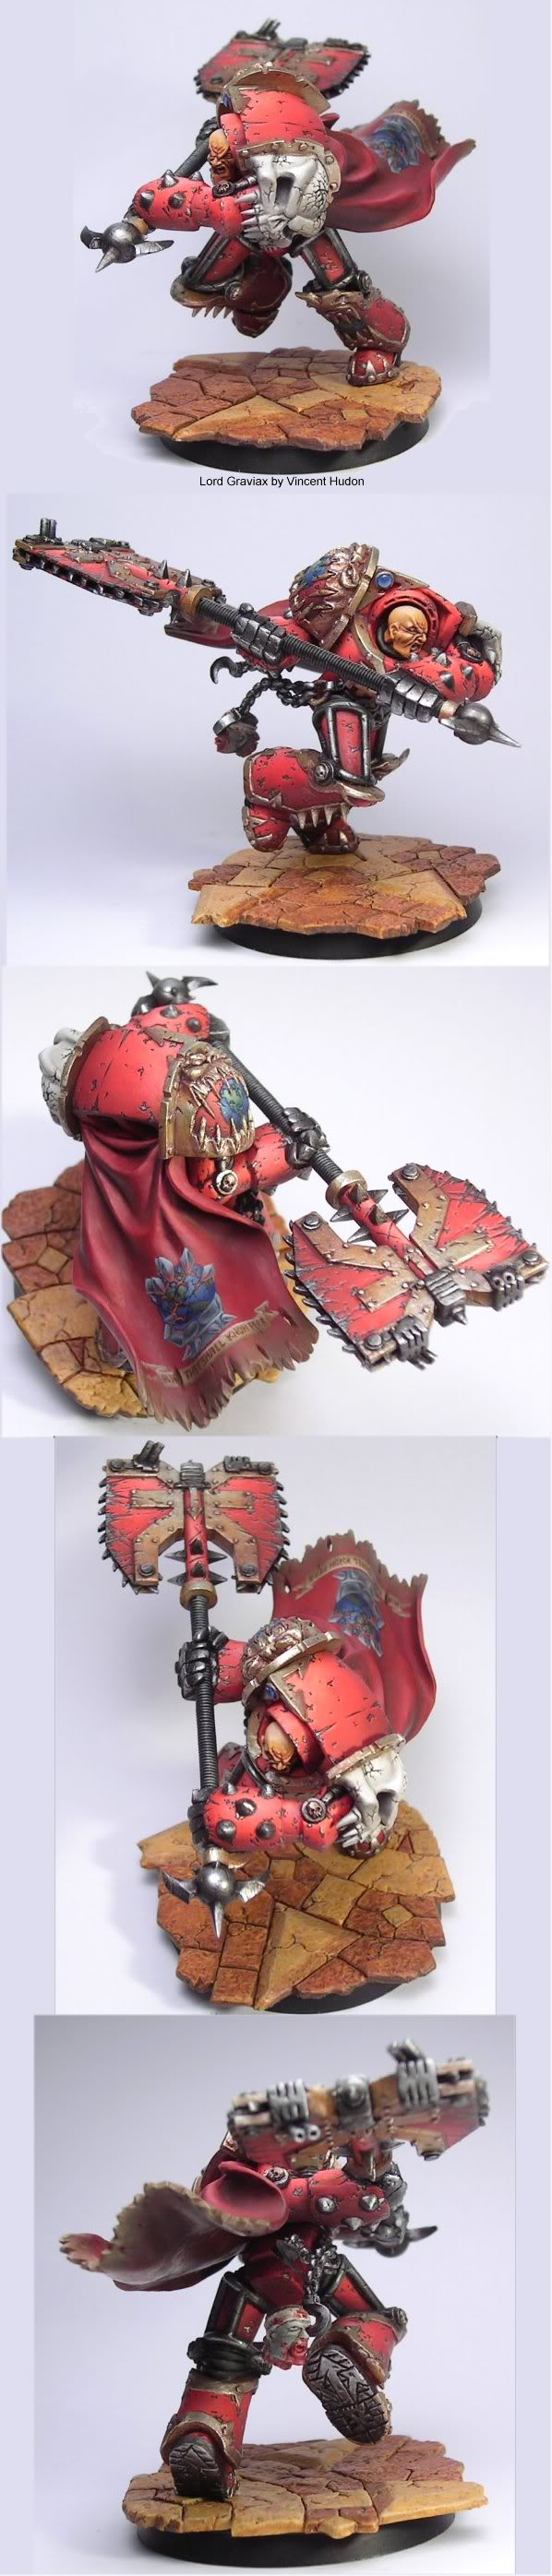 Lord Graviax, Canadian Slayer Sword 2007